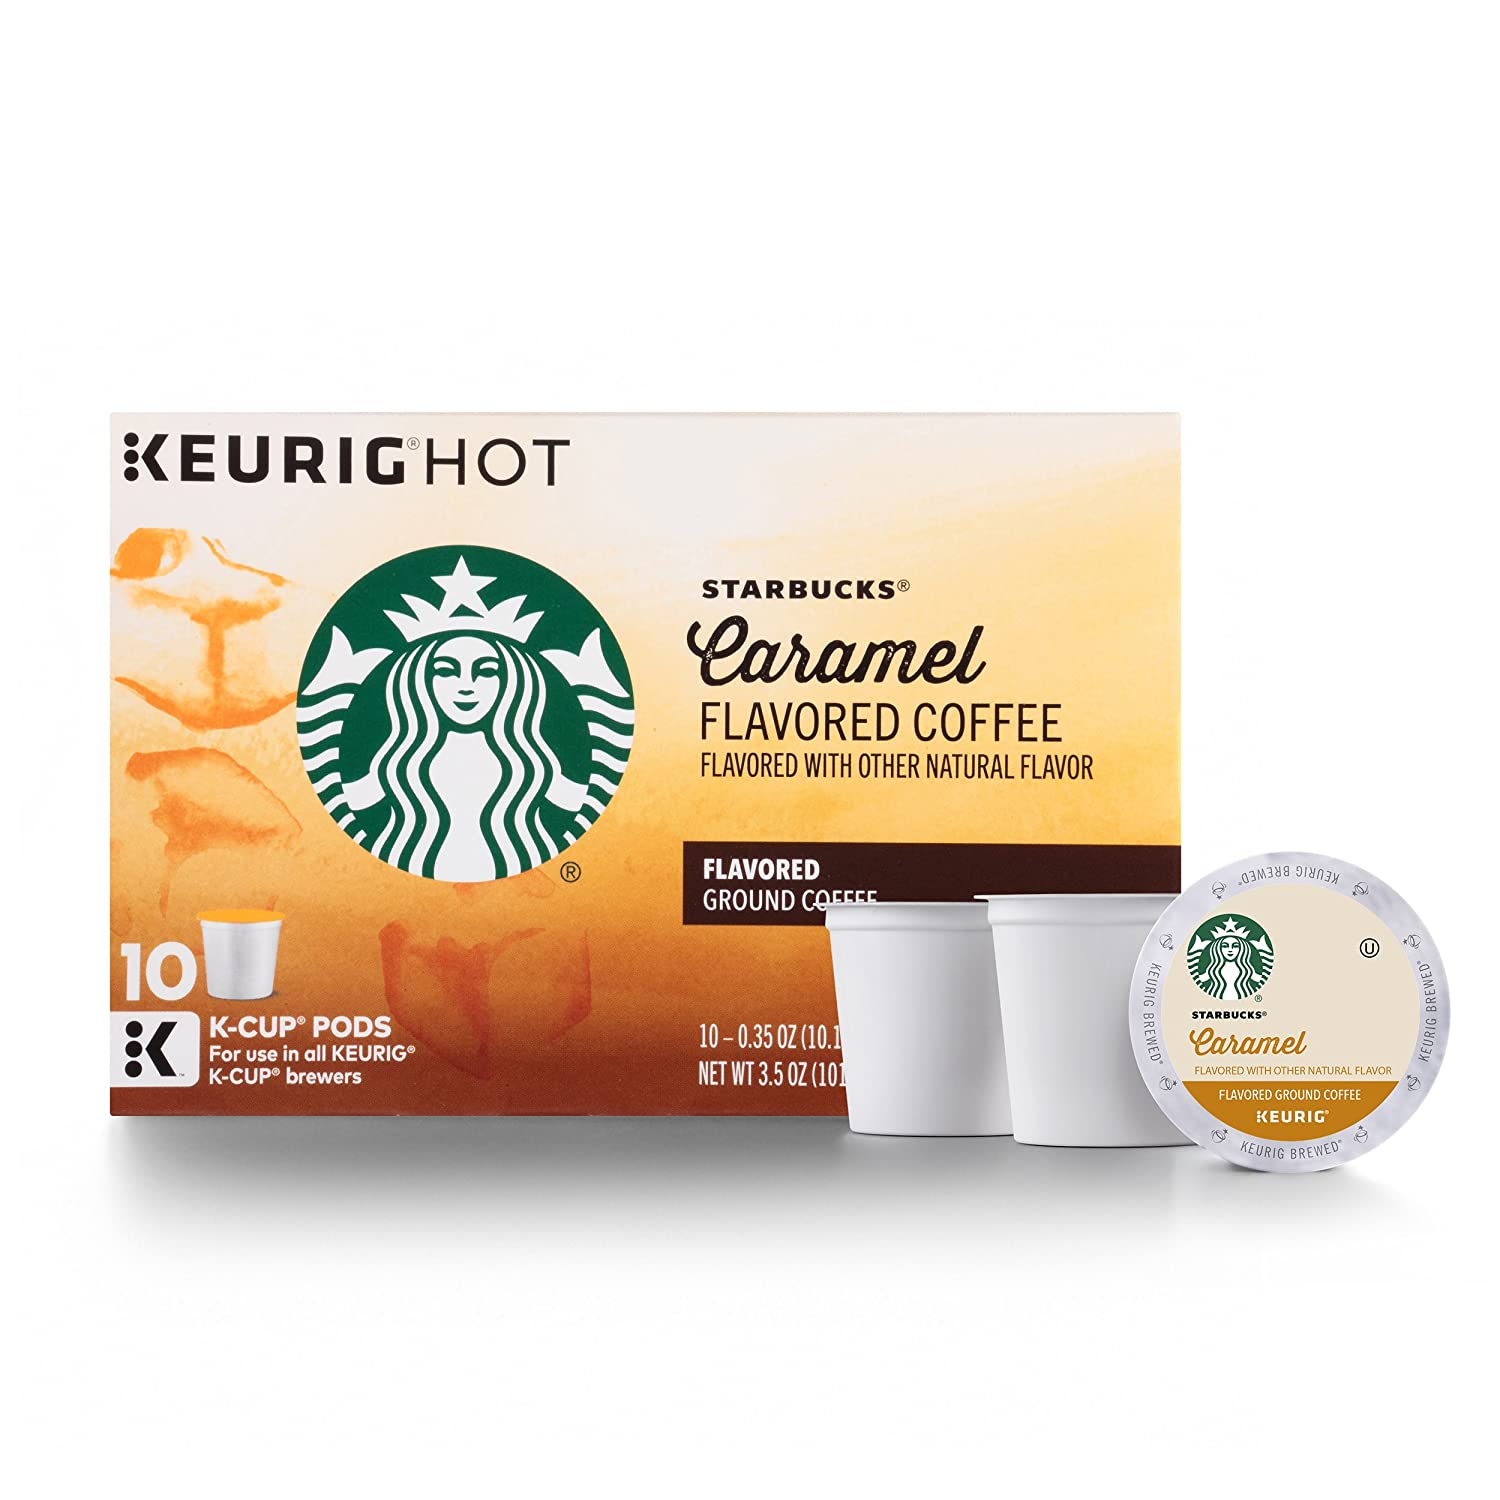 Starbucks Caramel Flavored Medium Roast Single Cup Coffee for Keurig Brewers, 6 Boxes of 10 (60 Total K-Cup pods)